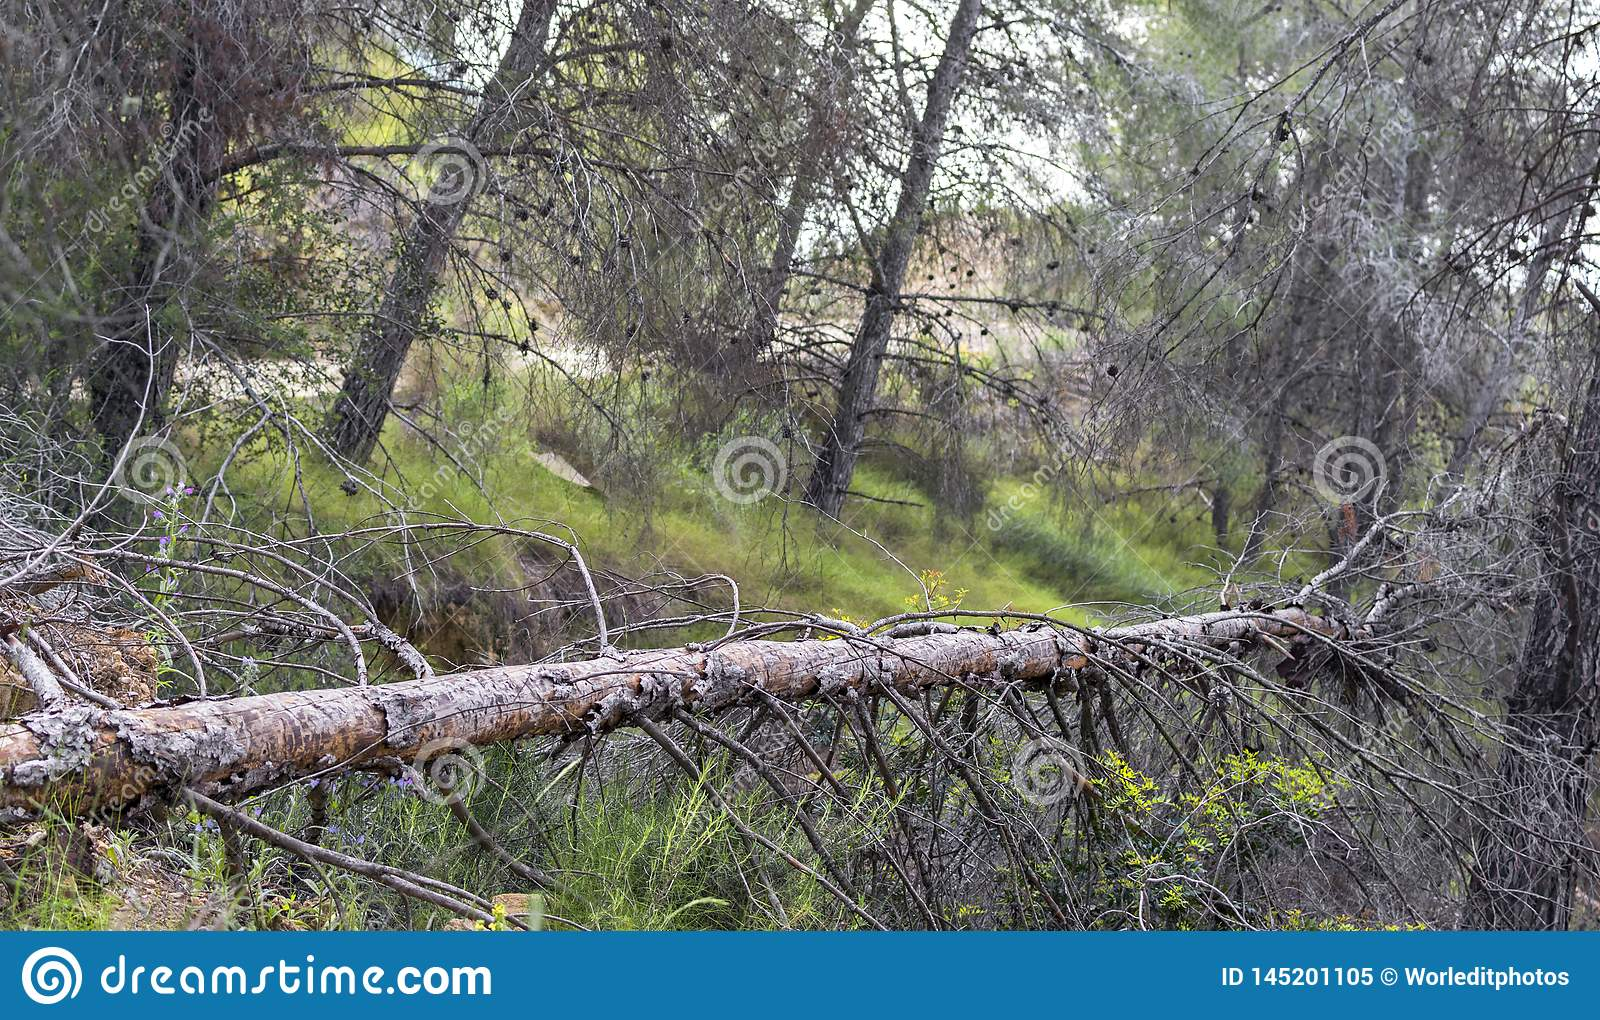 A fallen tree in a spanish forest on a Natural Park in Murcia